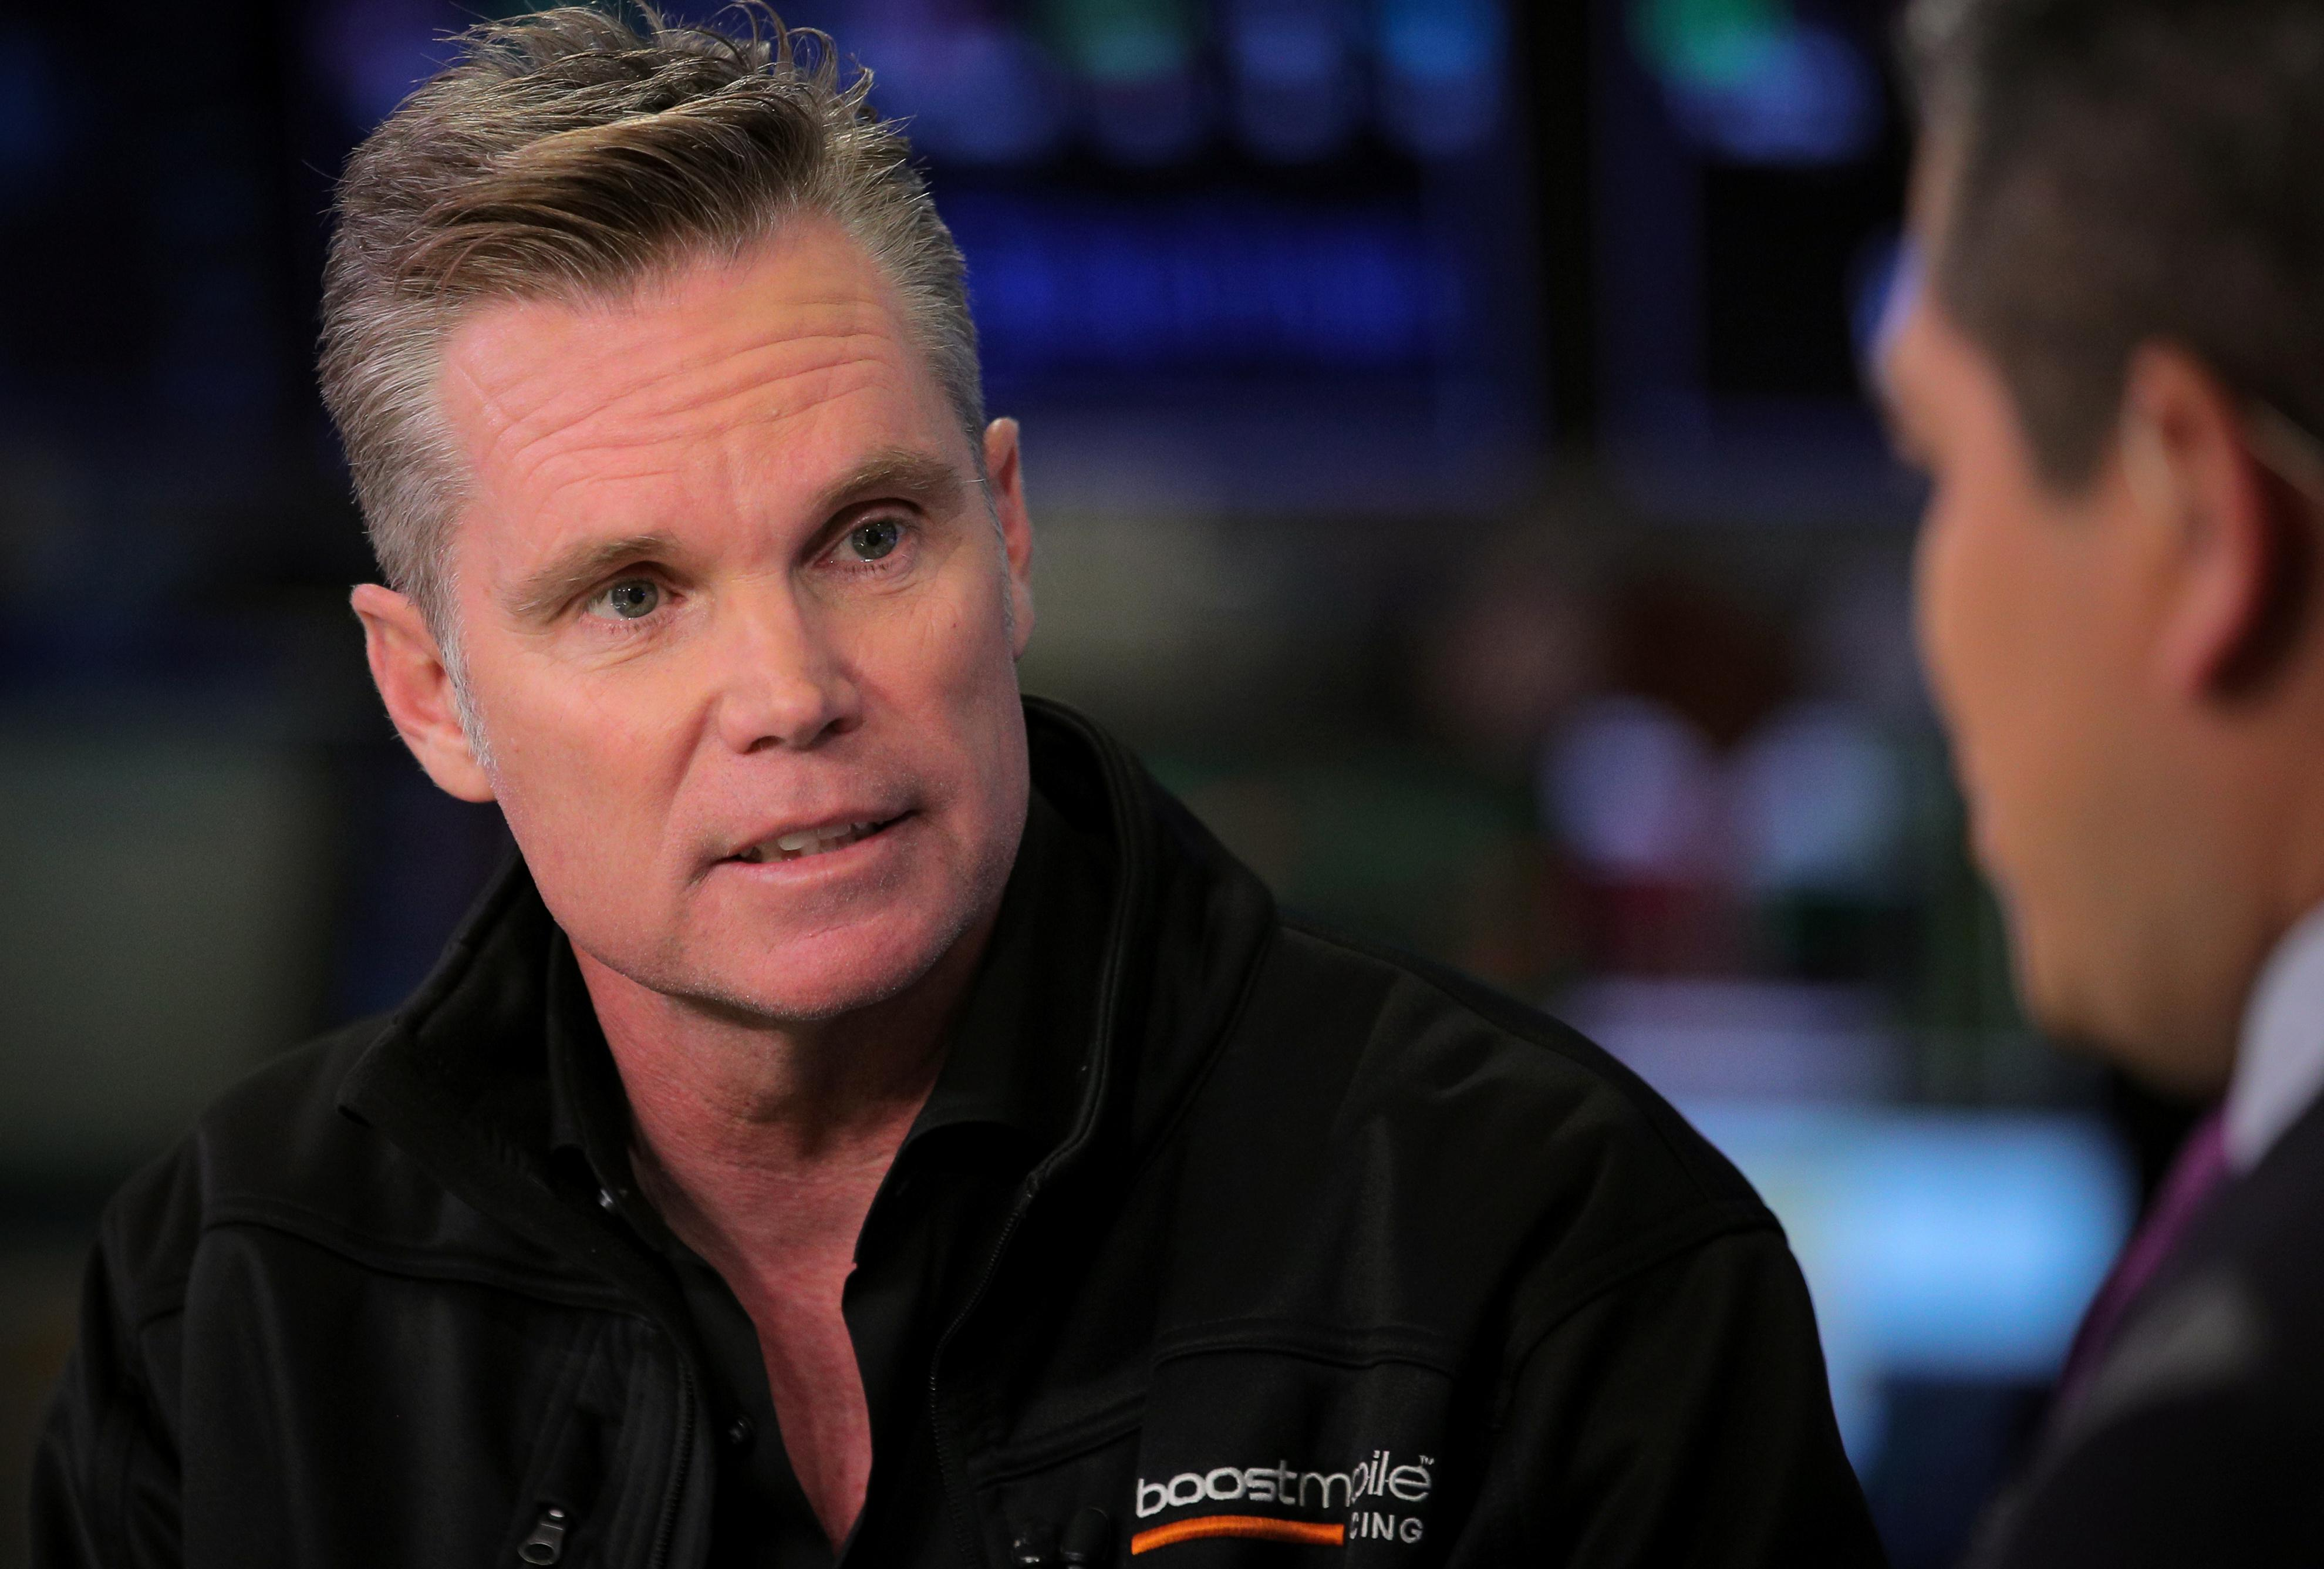 Boost founder says willing to pay up to $2 billion to buy brand...